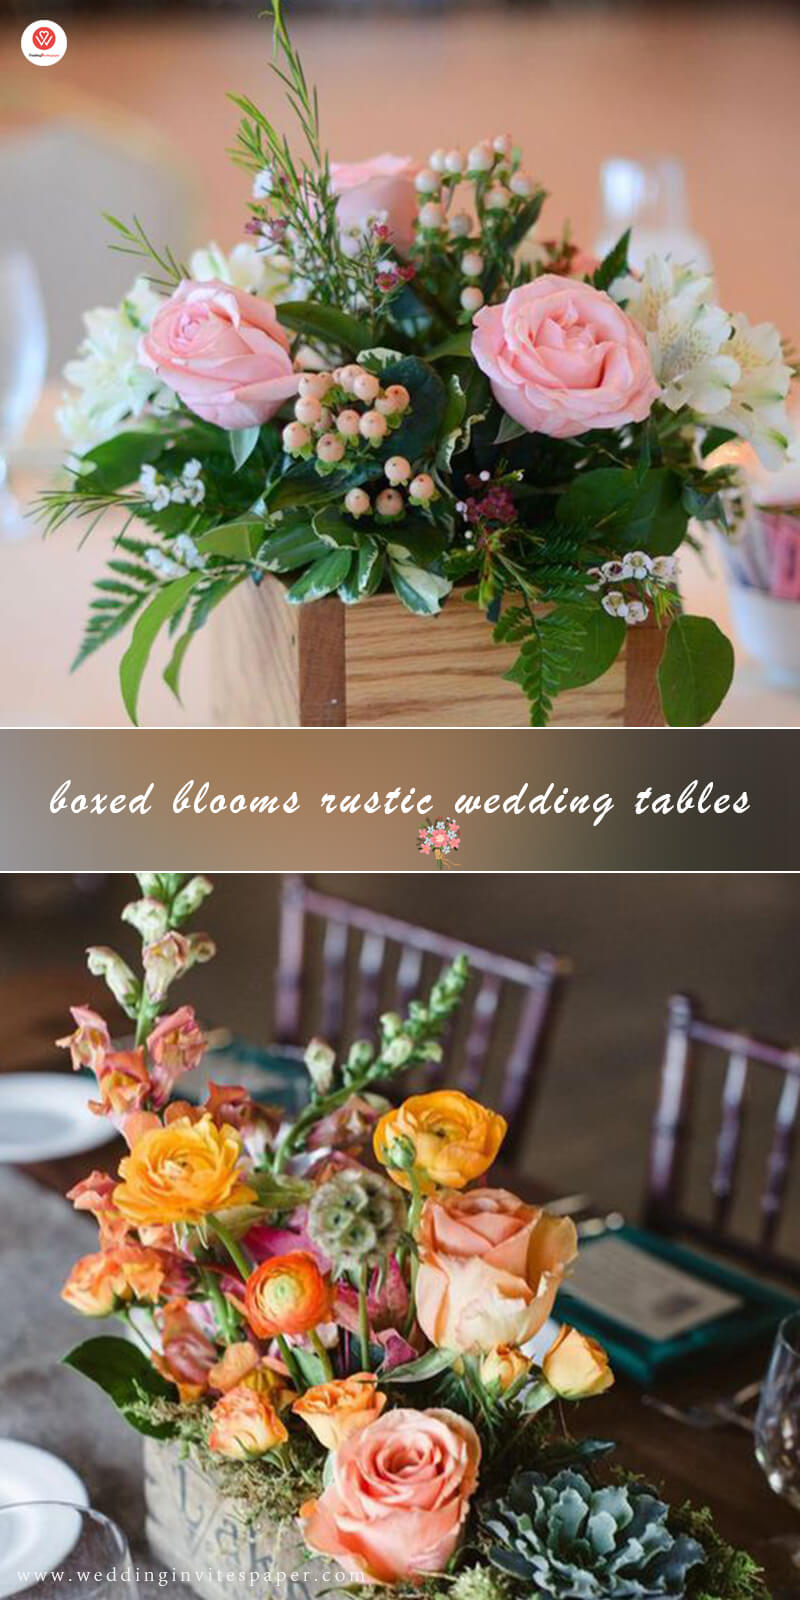 20 boxed blooms rustic wedding tables.jpg